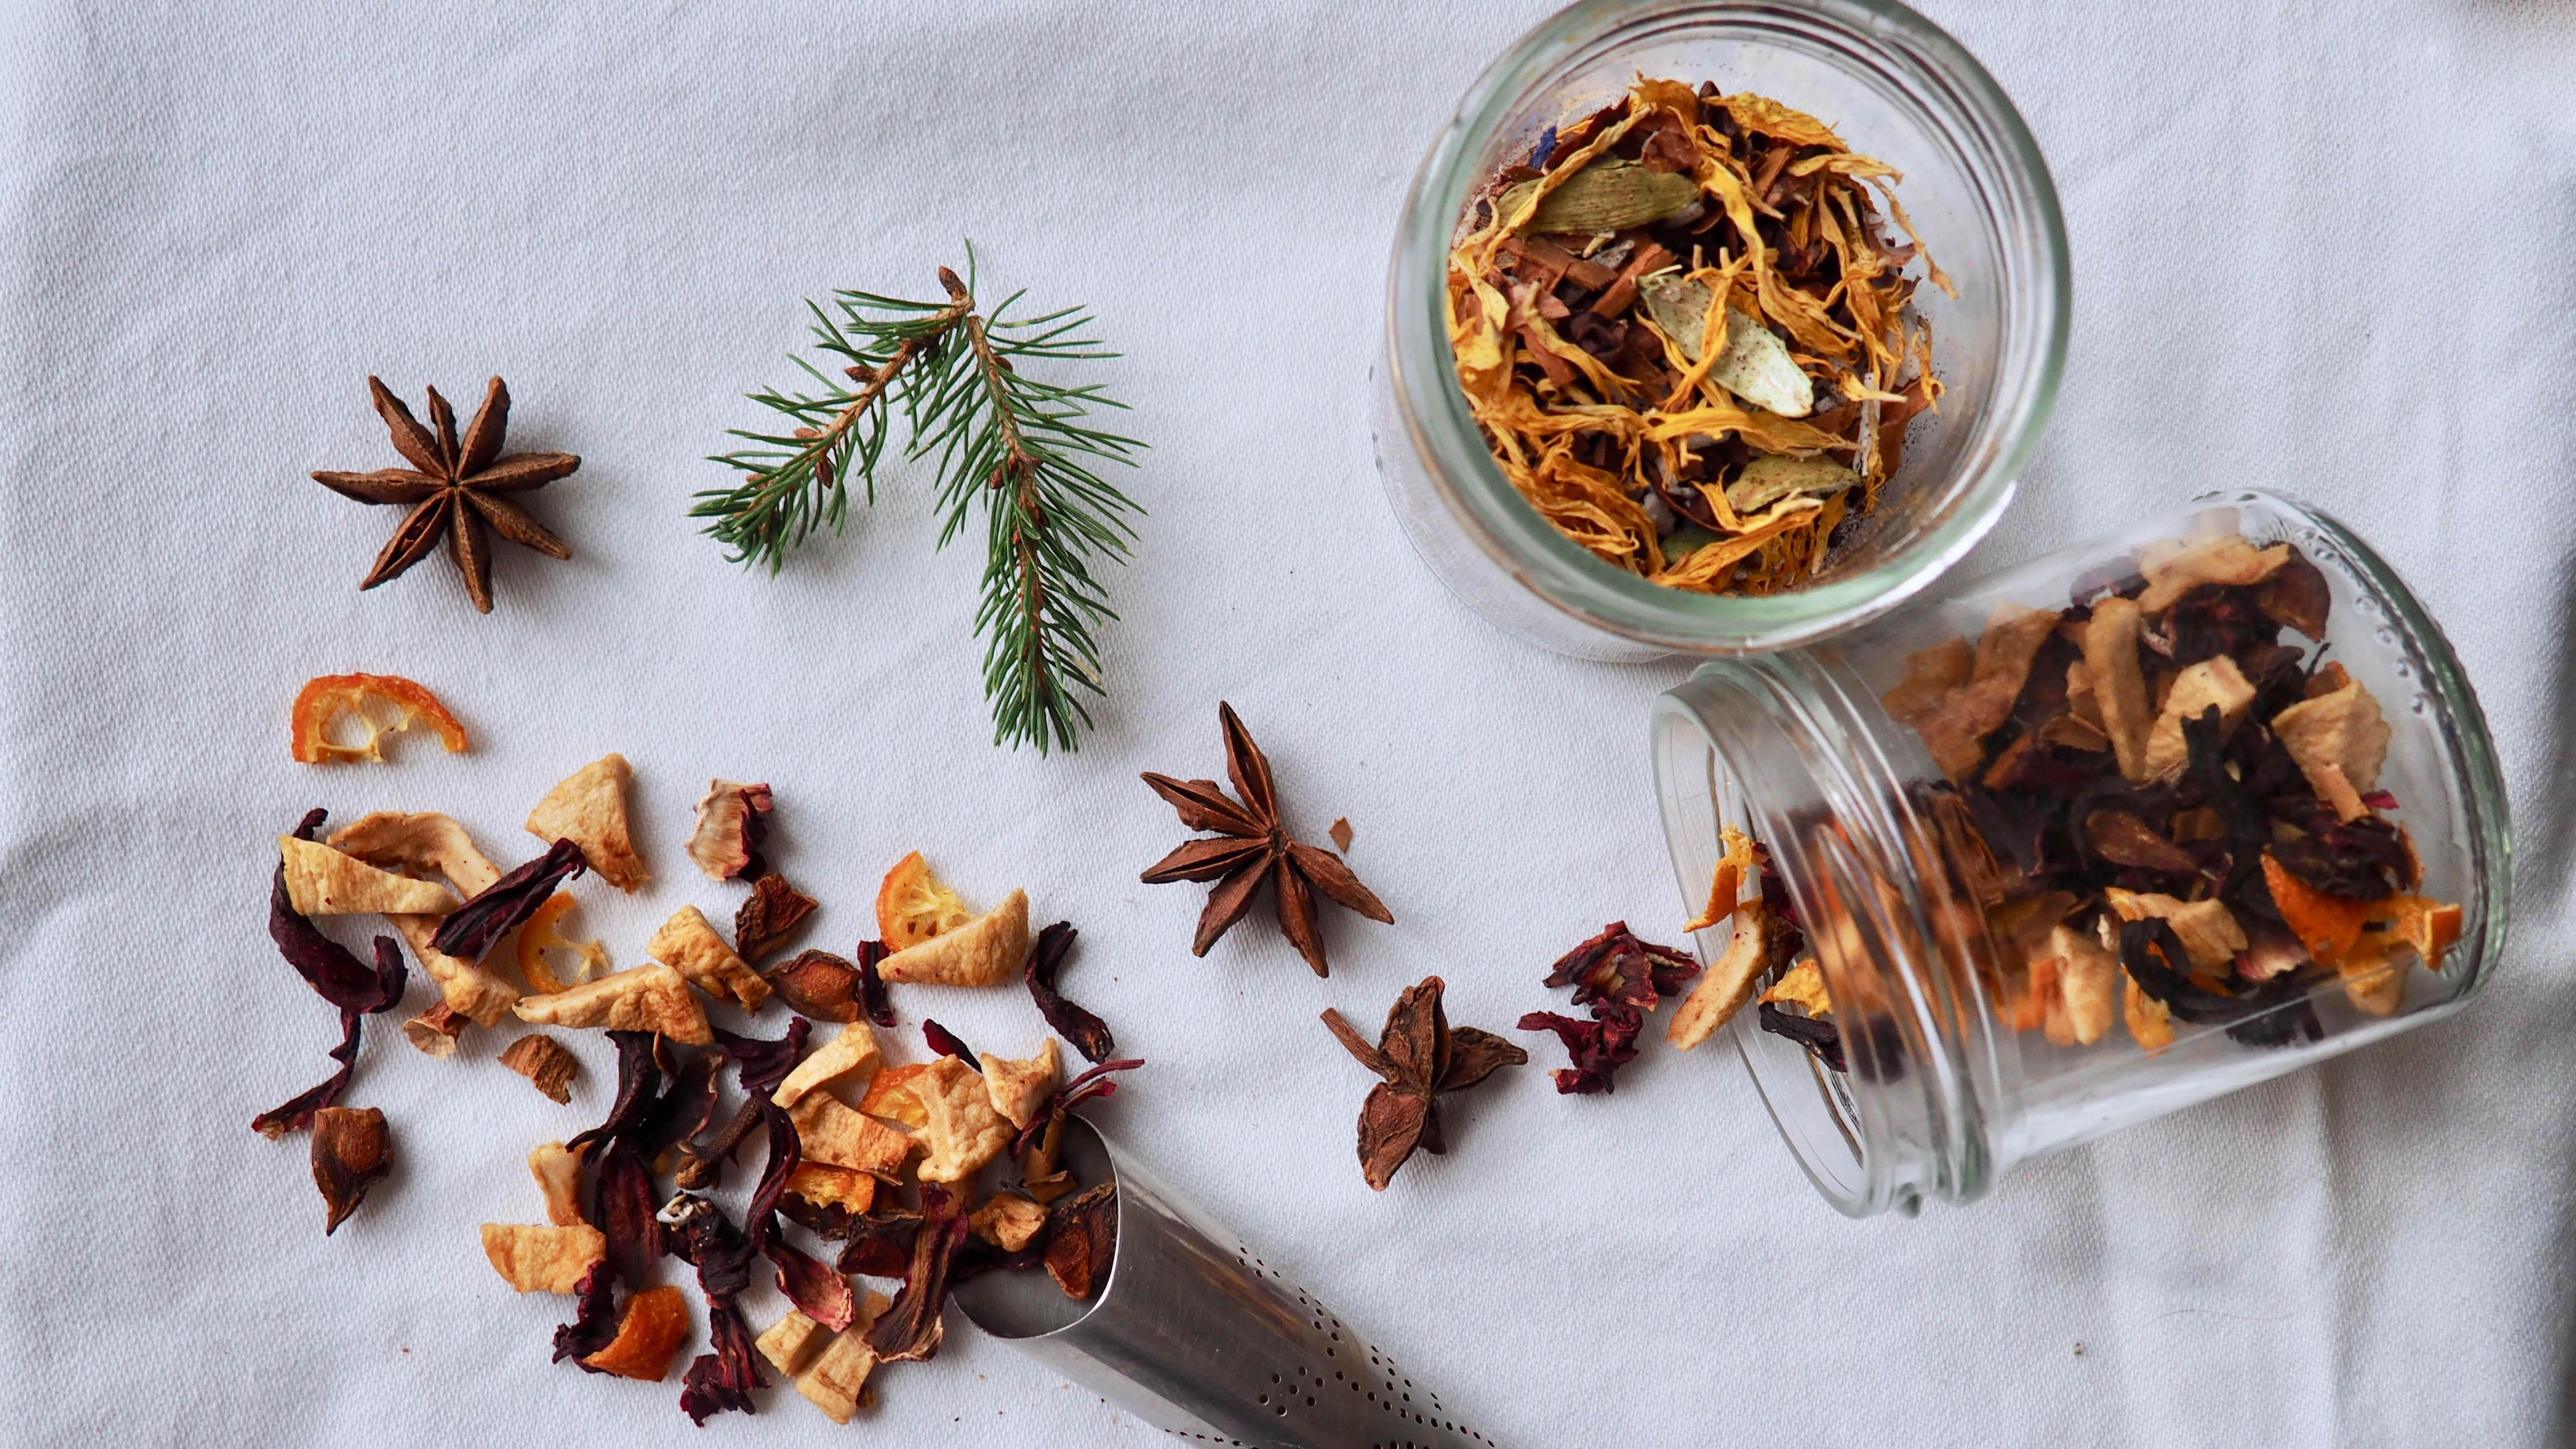 Petites Infusions d'Hiver